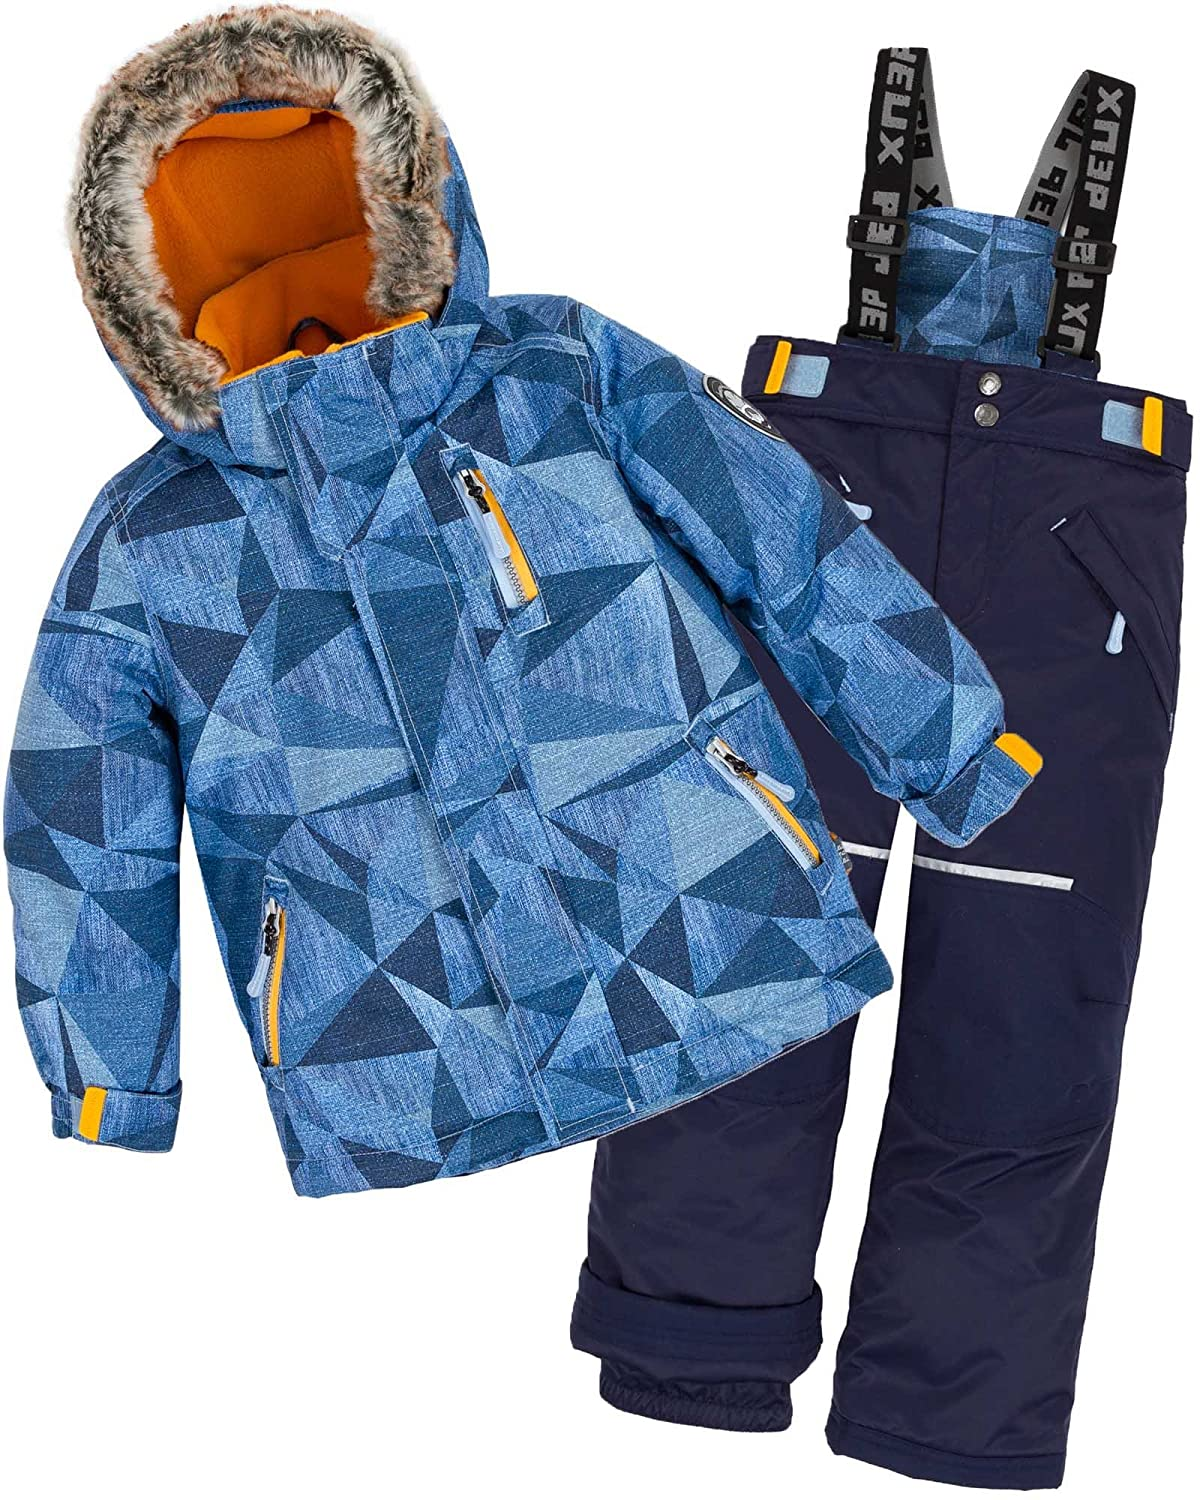 Deux par Deux Boys' 2-Piece Snowsuit Geo Jeans Navy, Sizes 3-14